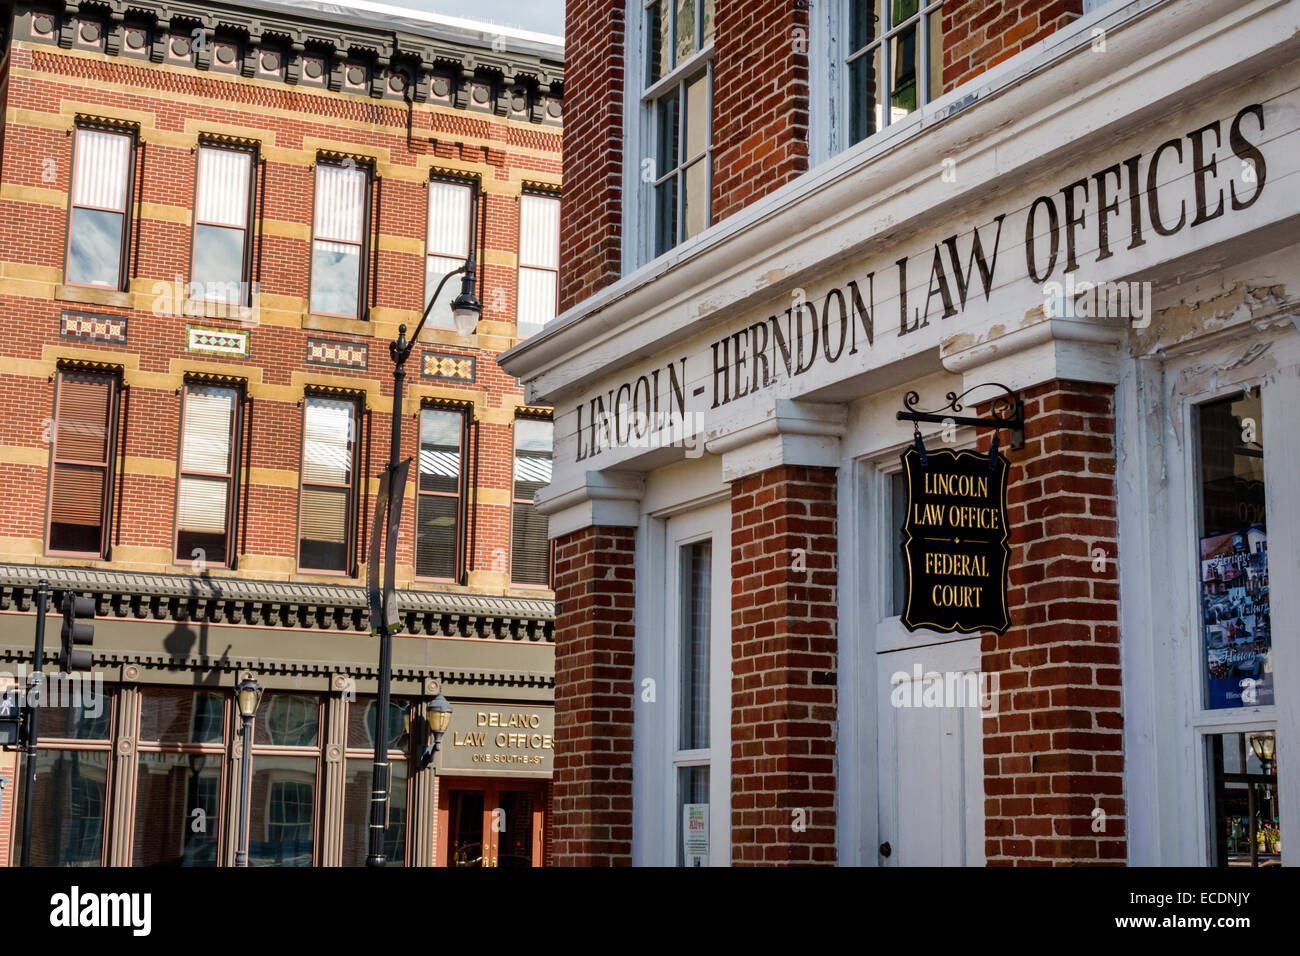 Springfield Illinois downtown historic buildings Old State Capitol Plaza Abraham Lincoln-Herndon Law Offices - Stock Image